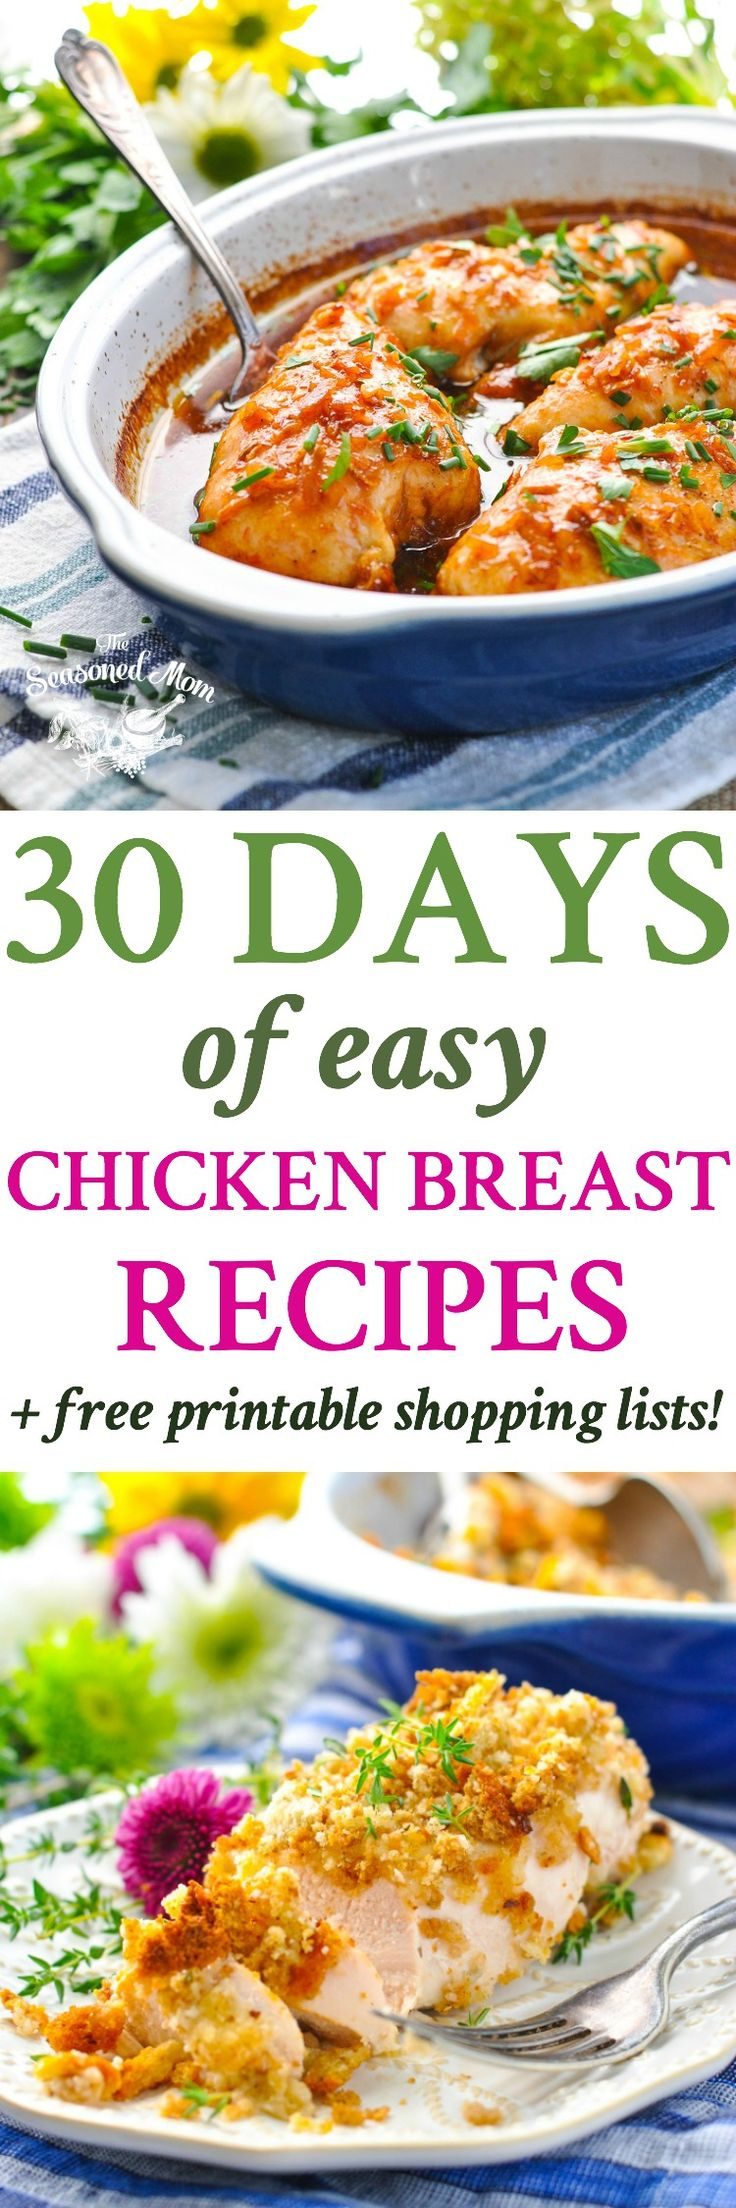 The meal planning is done for you with these 30 Days of Easy Chicken Breast Recipes and printable weekly shopping lists! Chicken Recipes | Easy Dinner Recipes | Dinner Ideas #chicken #dinner #chickenbreast